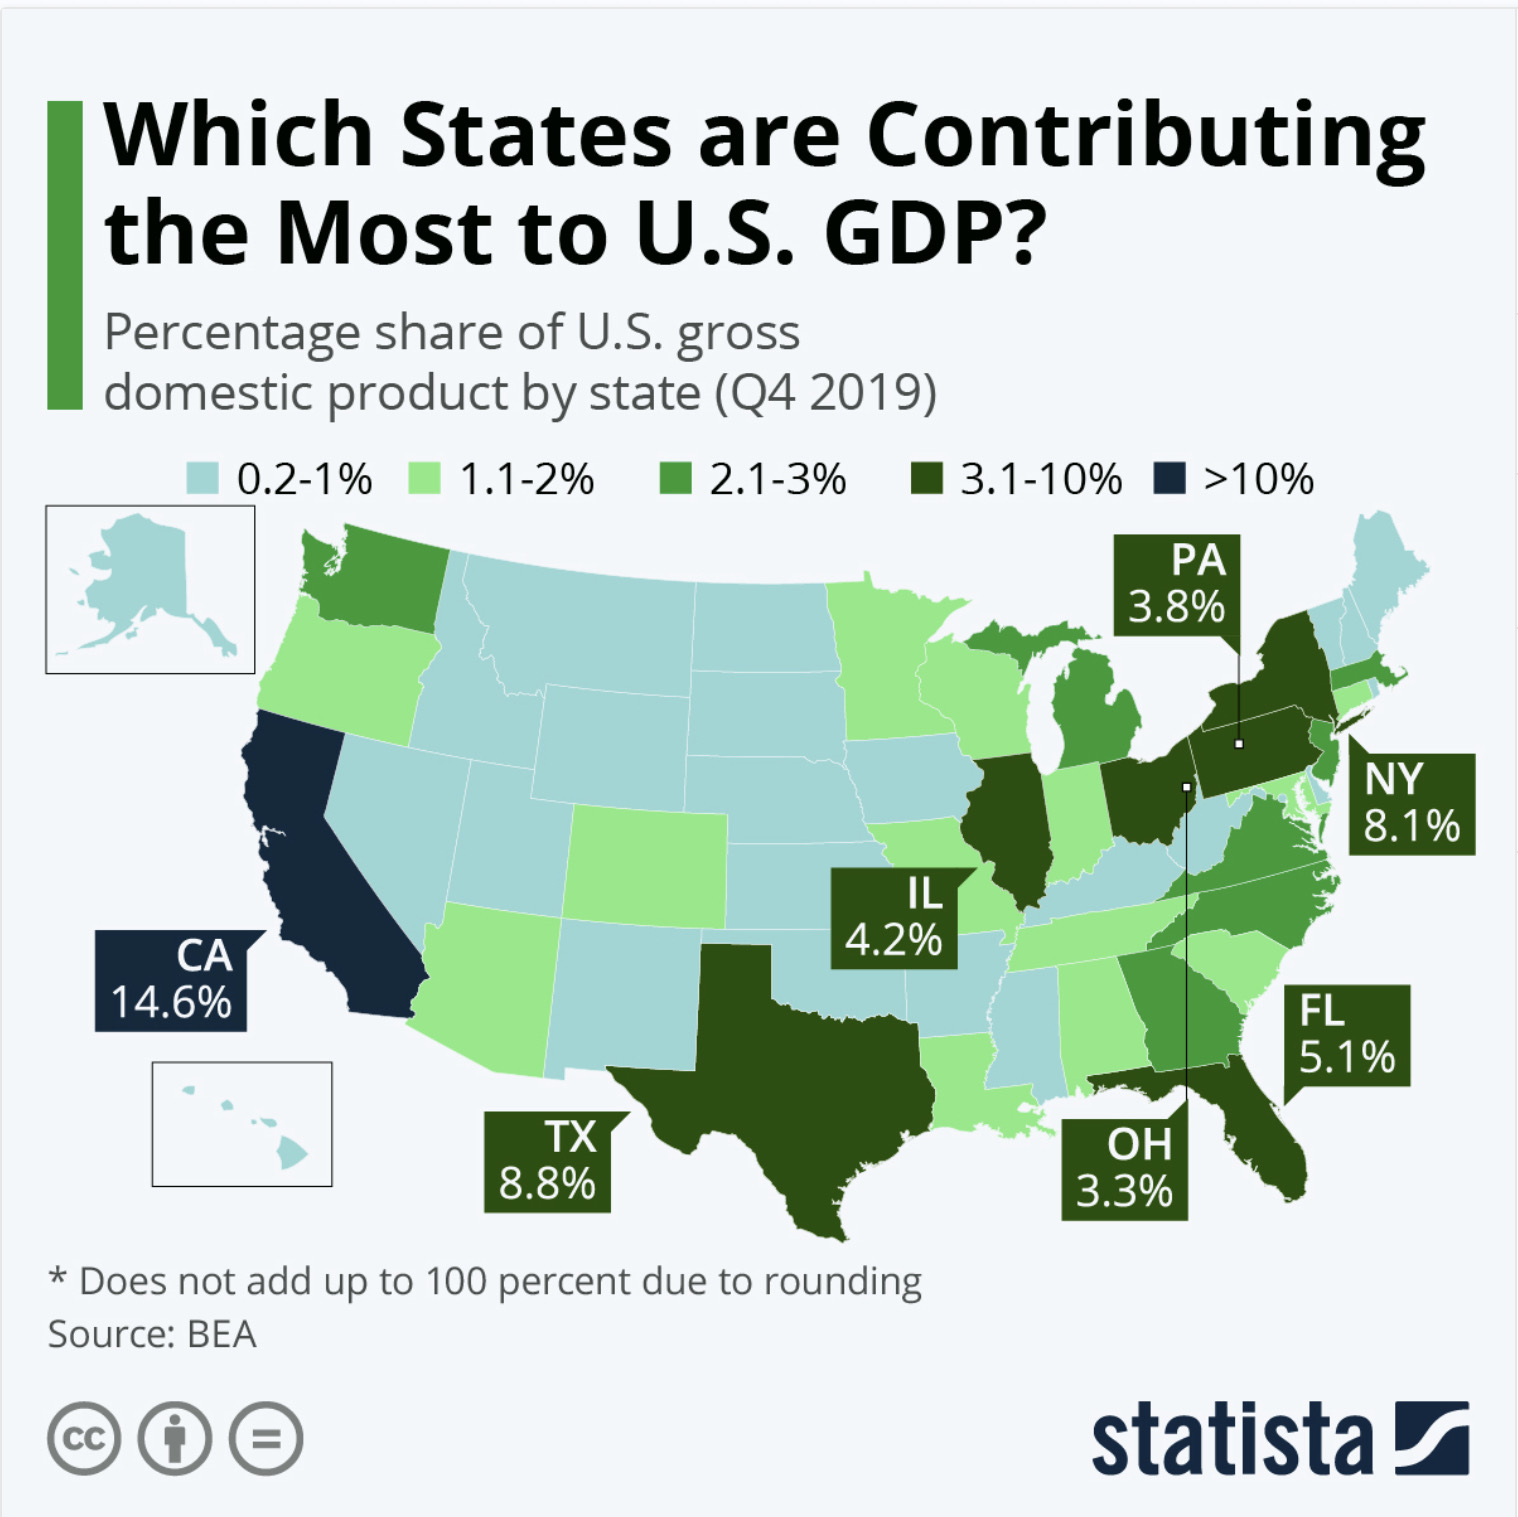 A map showing which states are contributing most to the U.S. GDP